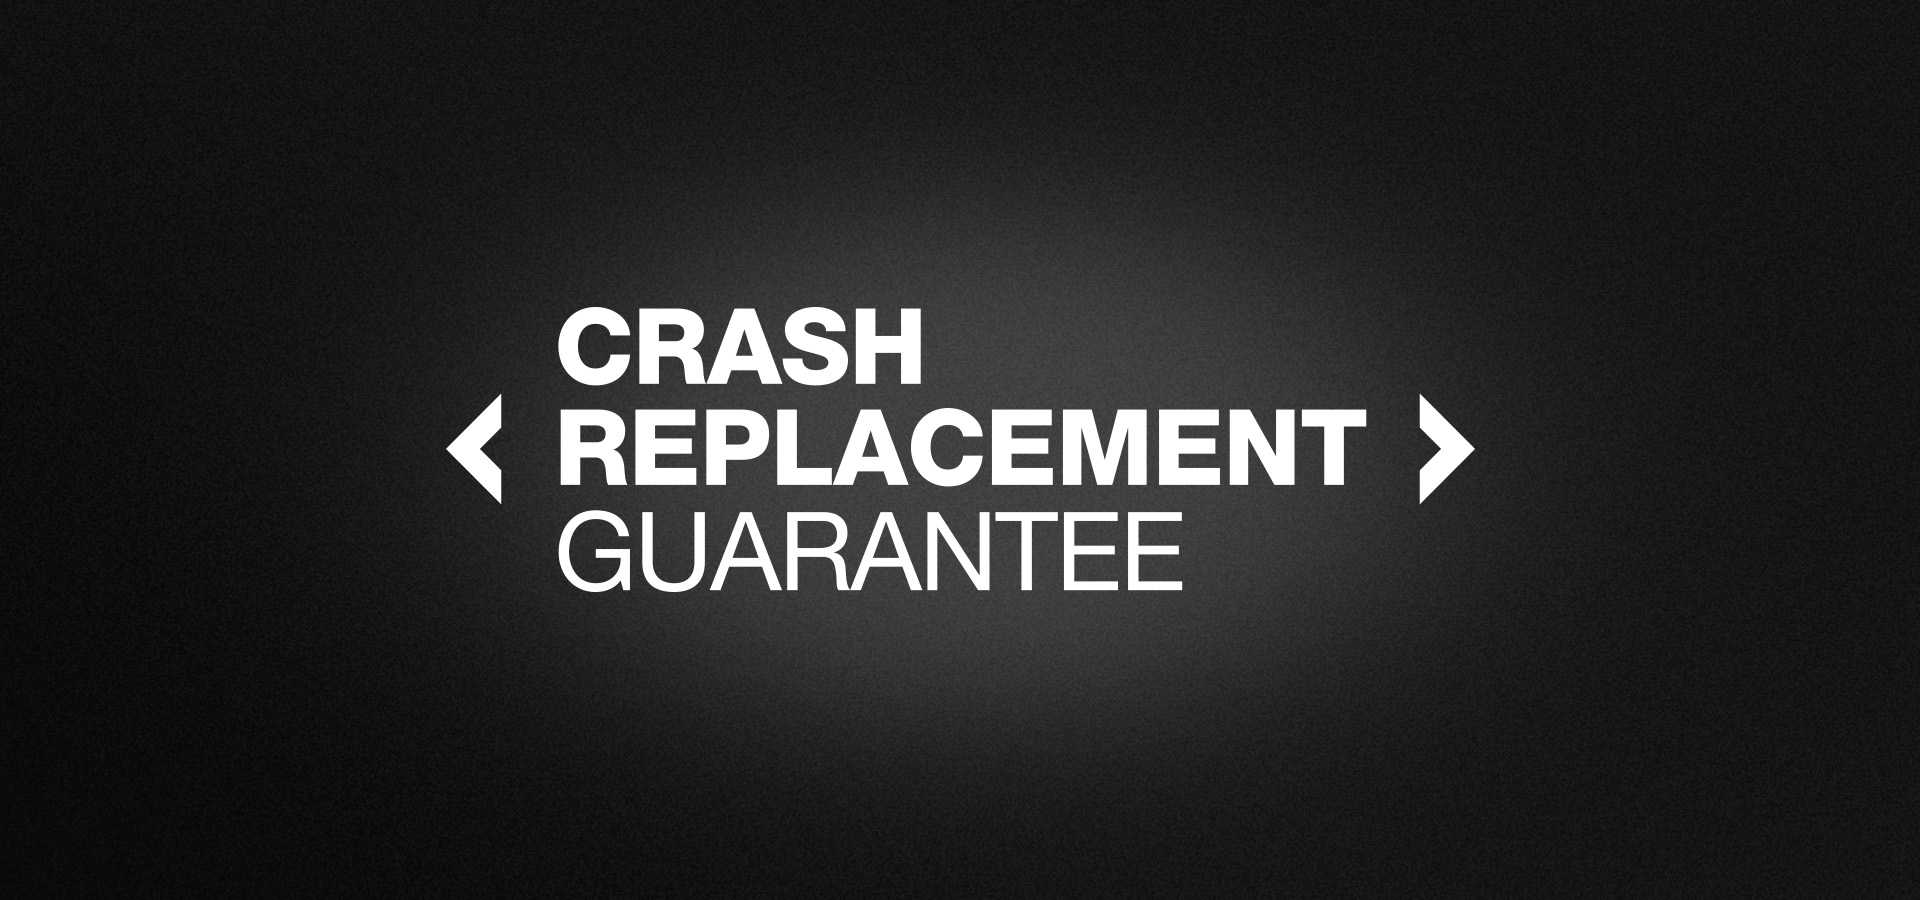 Crash Replacement Guarantee.jpg